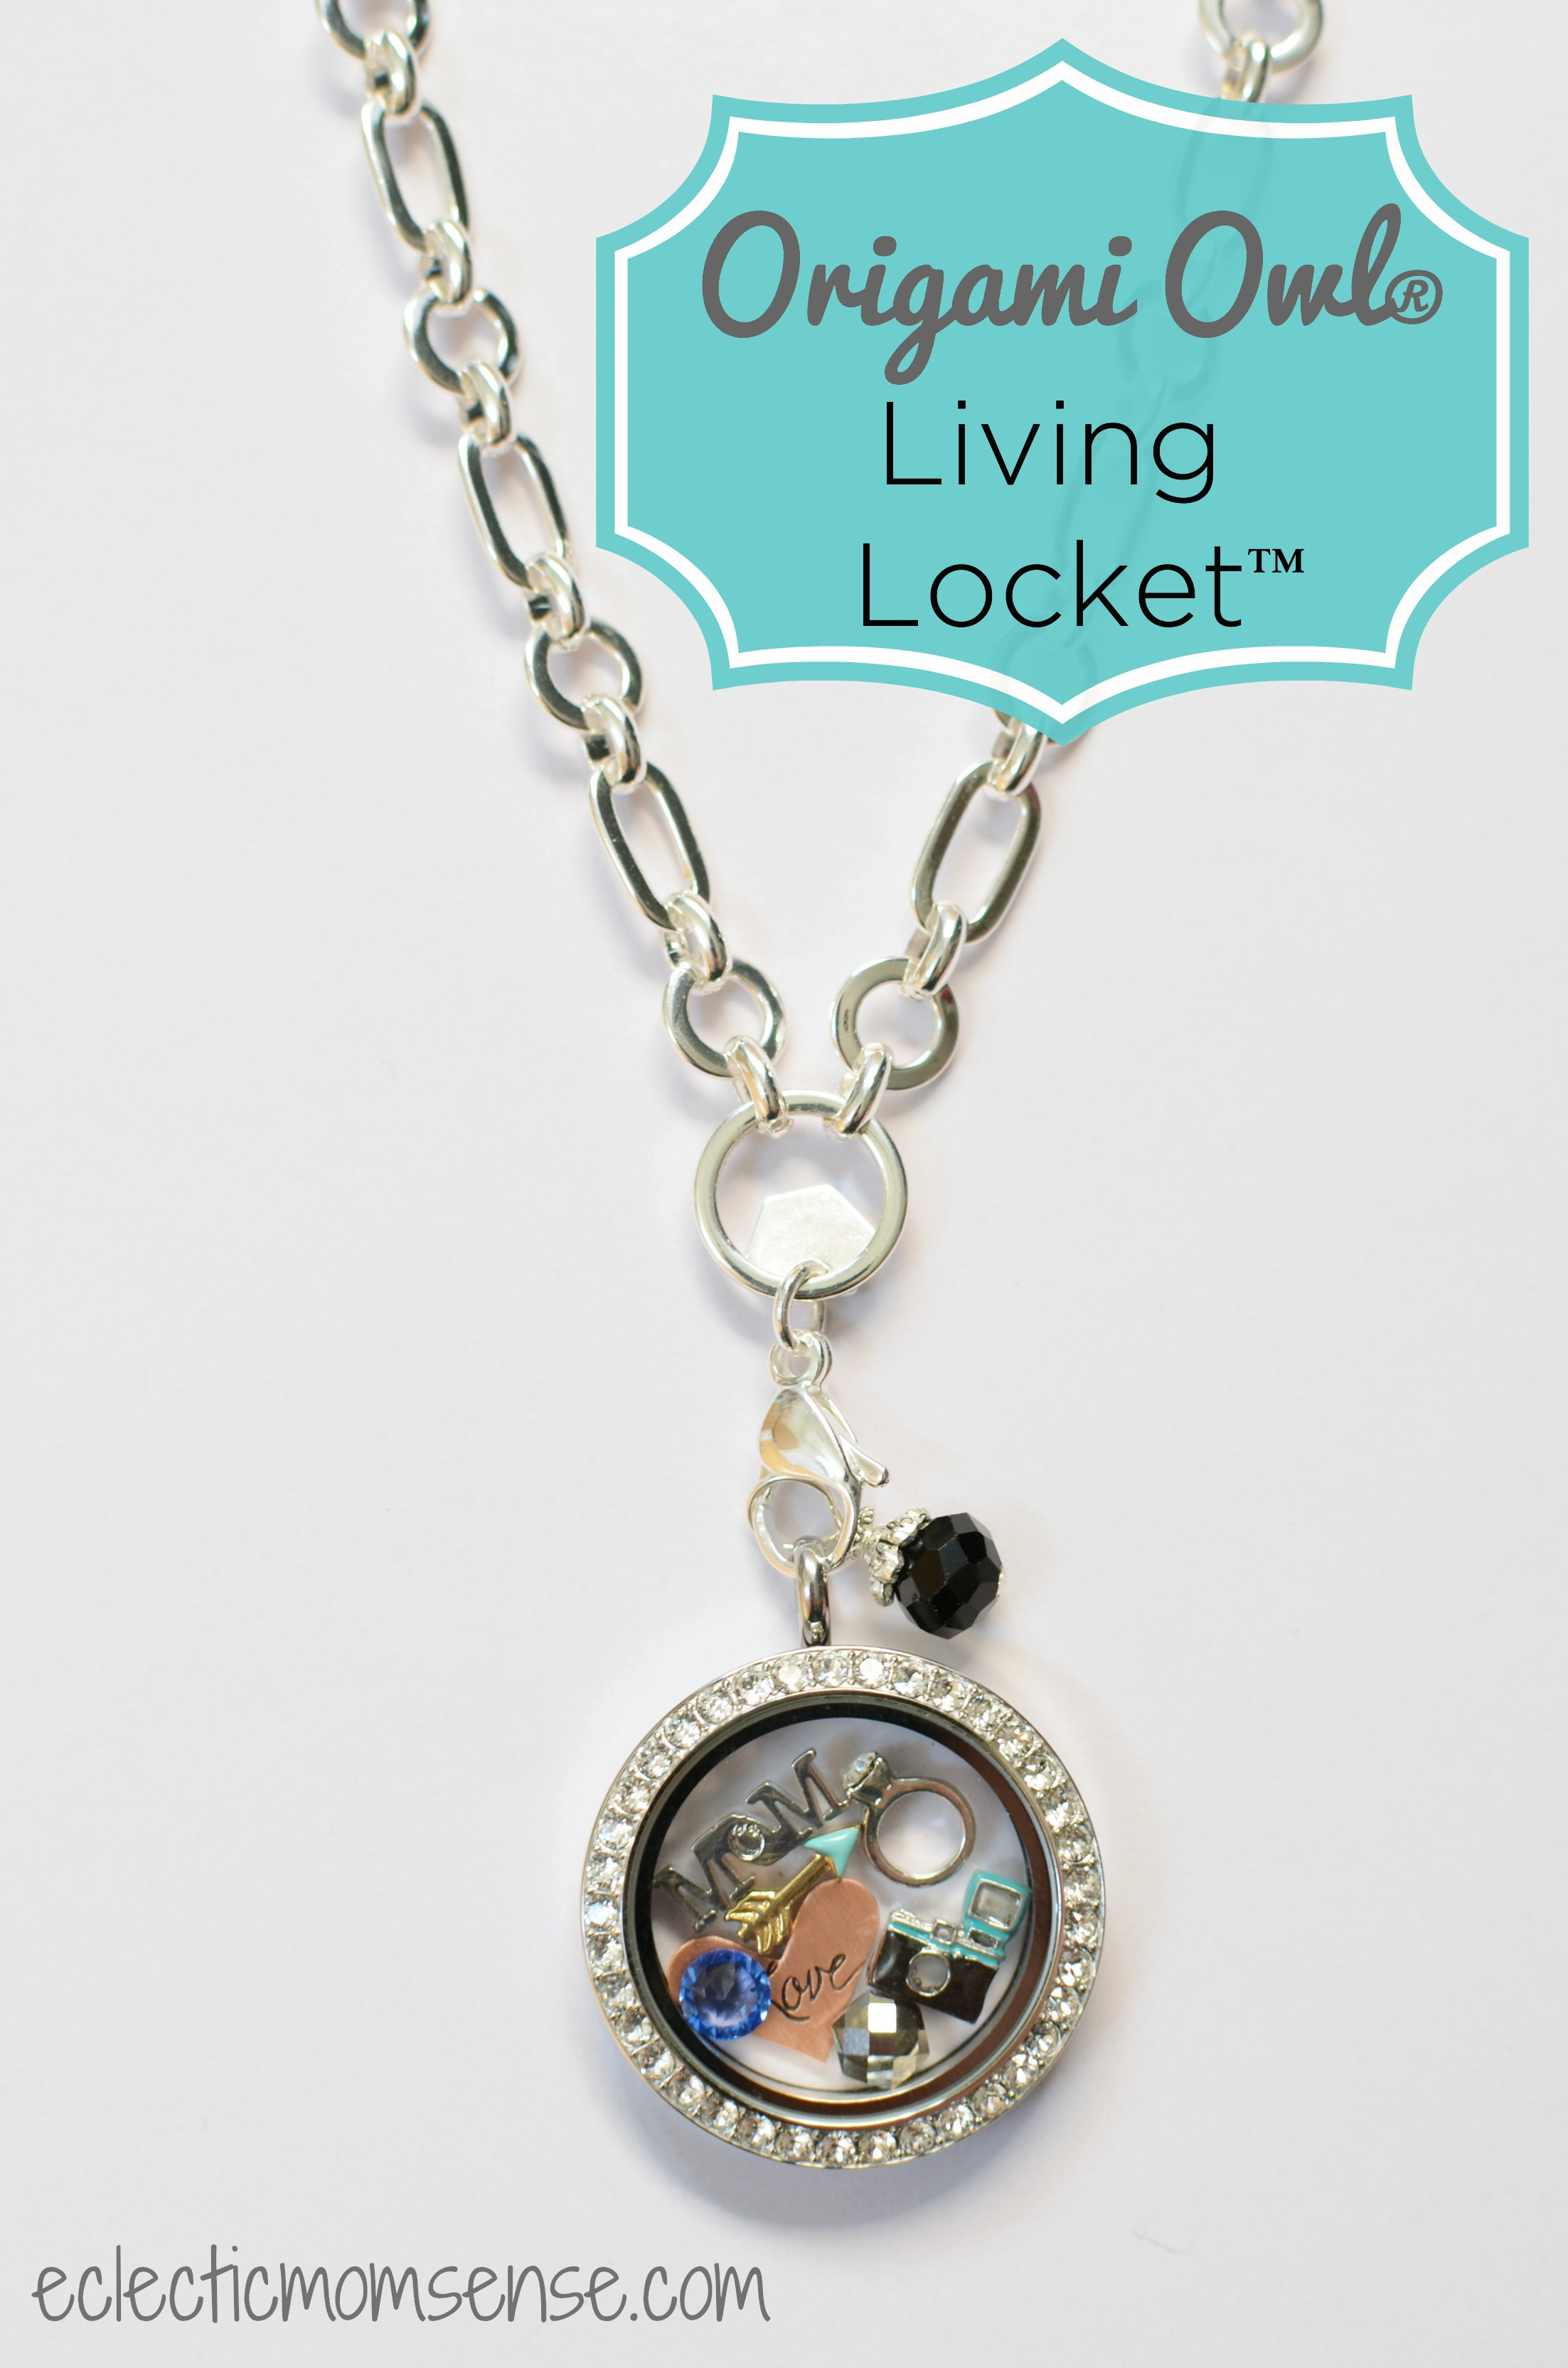 Origami Owl® Living Locket: Building Your Story - Eclectic ... - photo#19